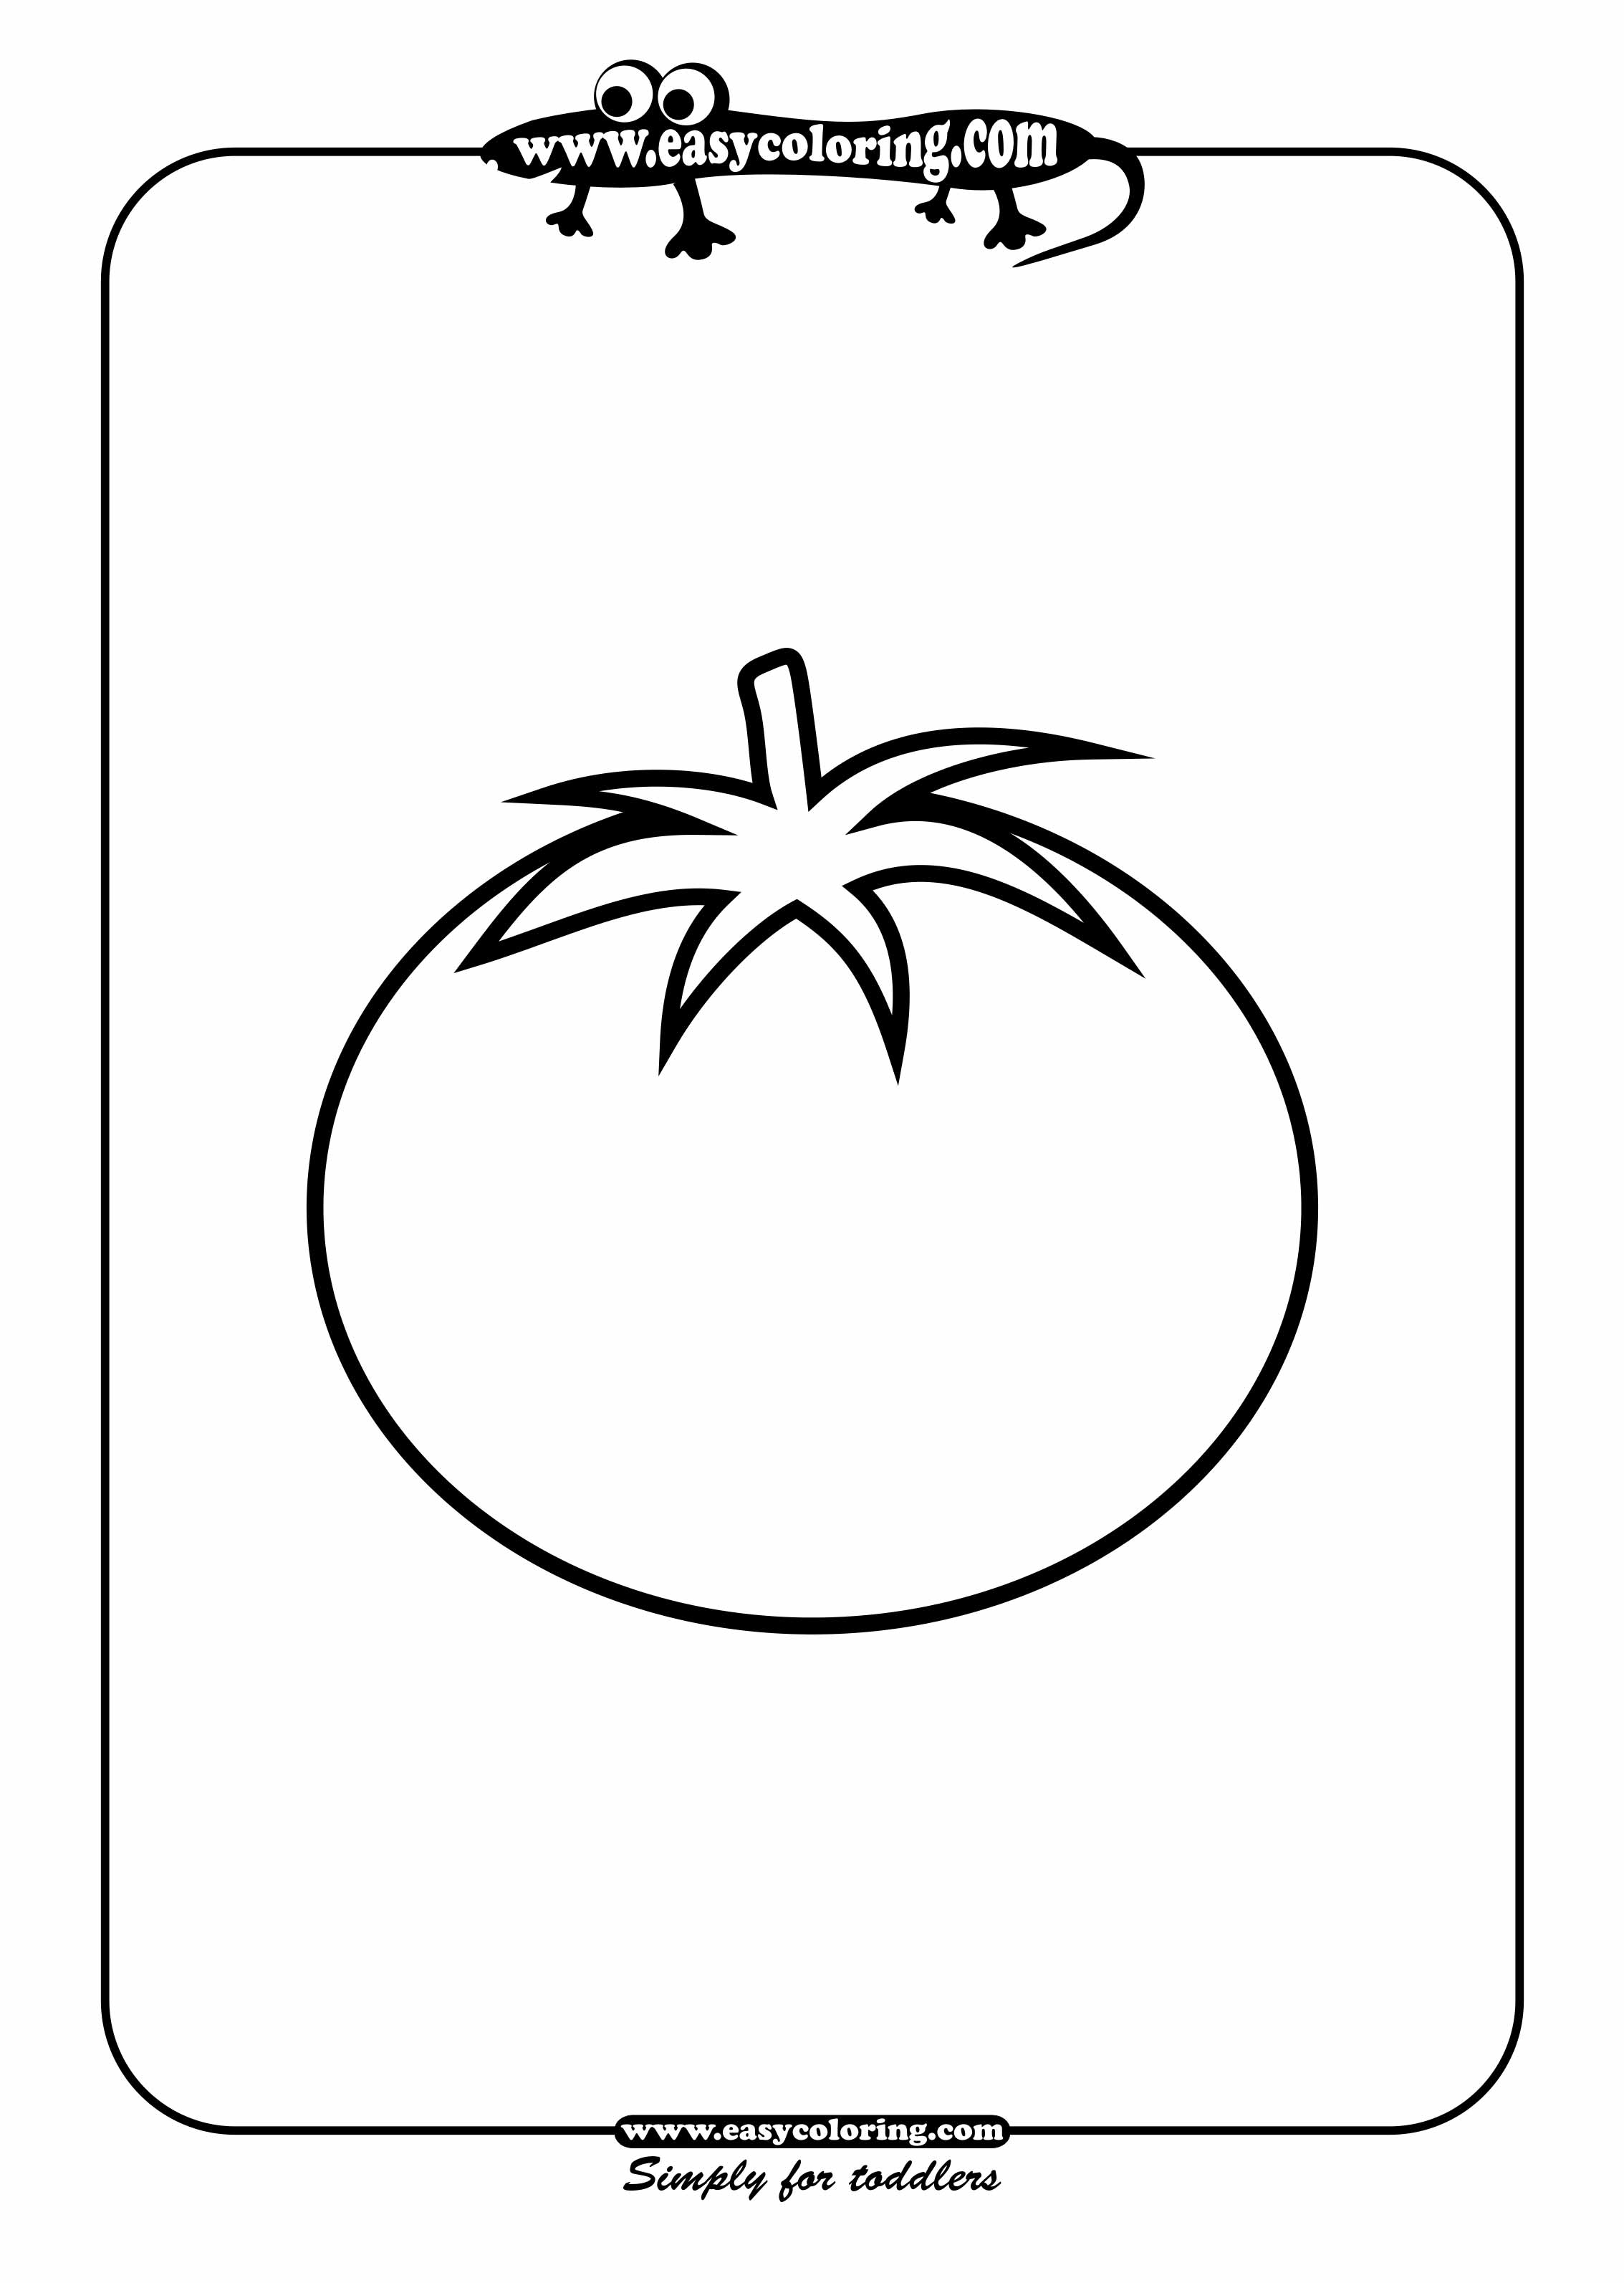 Www preschoolcoloringbook com summer coloring page - Free I Tomato Coloring Pages